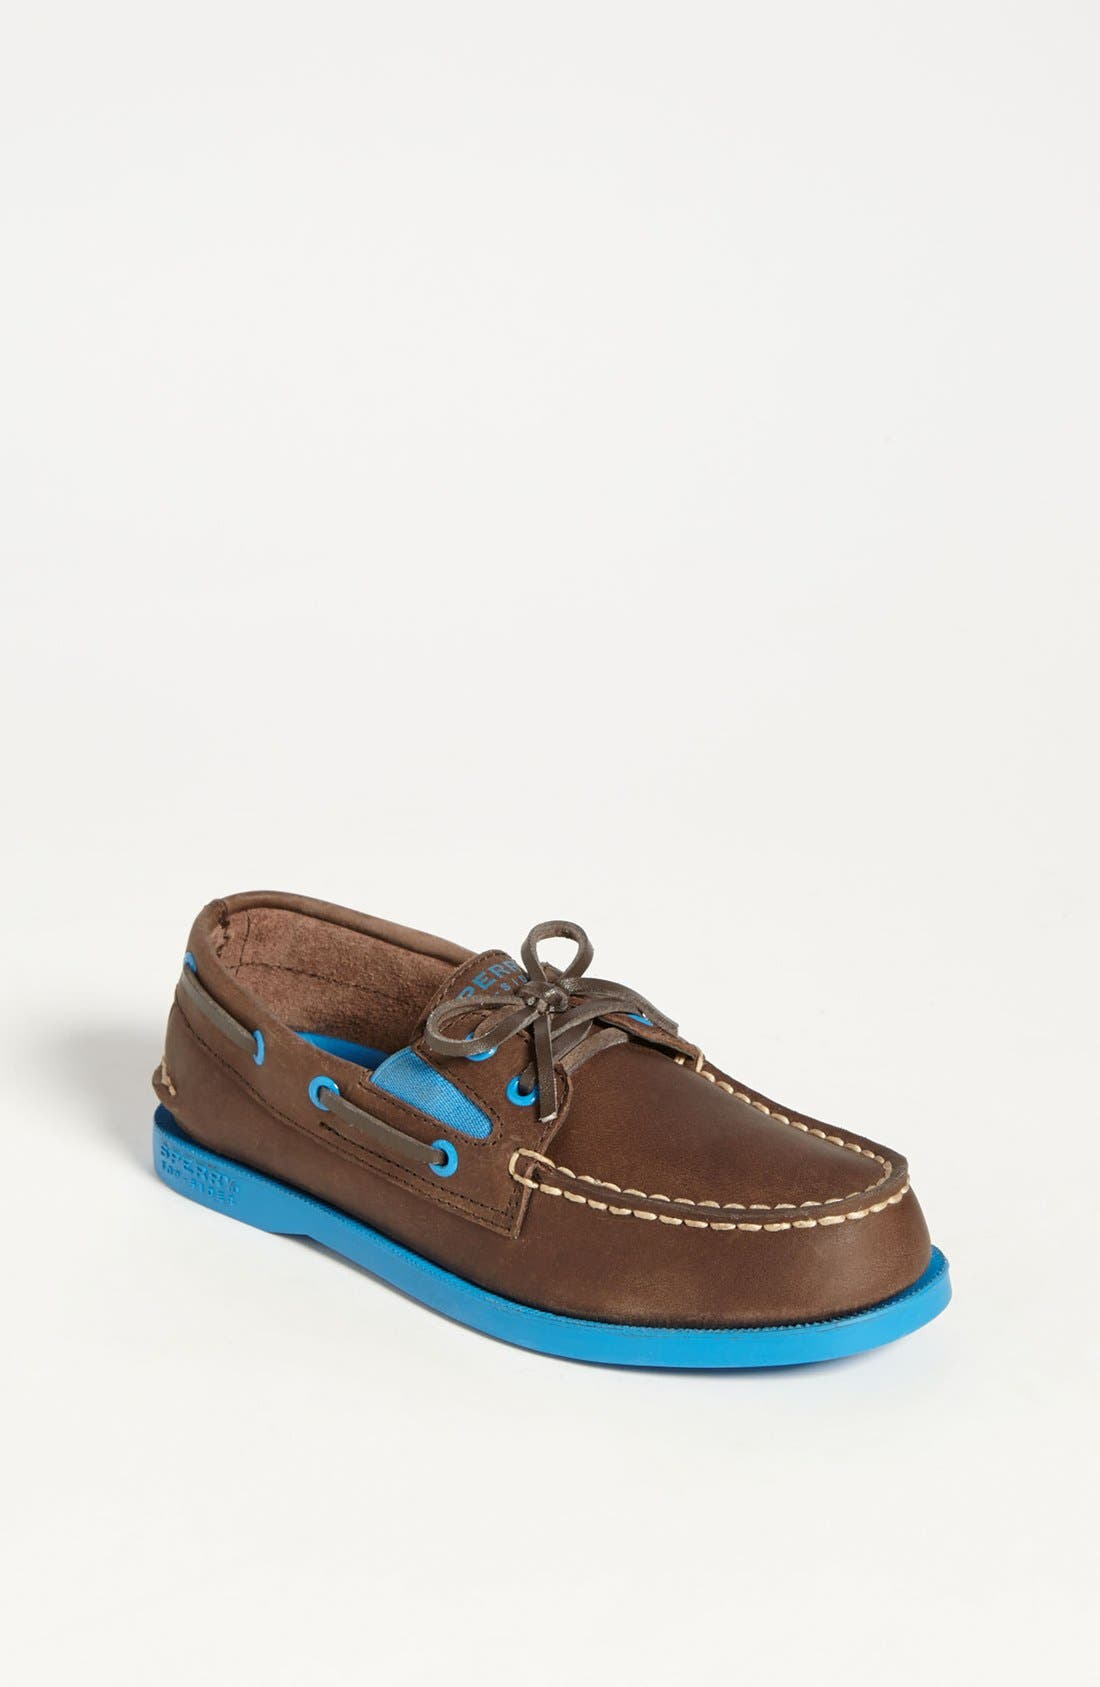 Alternate Image 1 Selected - Sperry Top-Sider® Kids 'Authentic Original' Slip-On (Walker, Toddler, Little Kid & Big Kid)